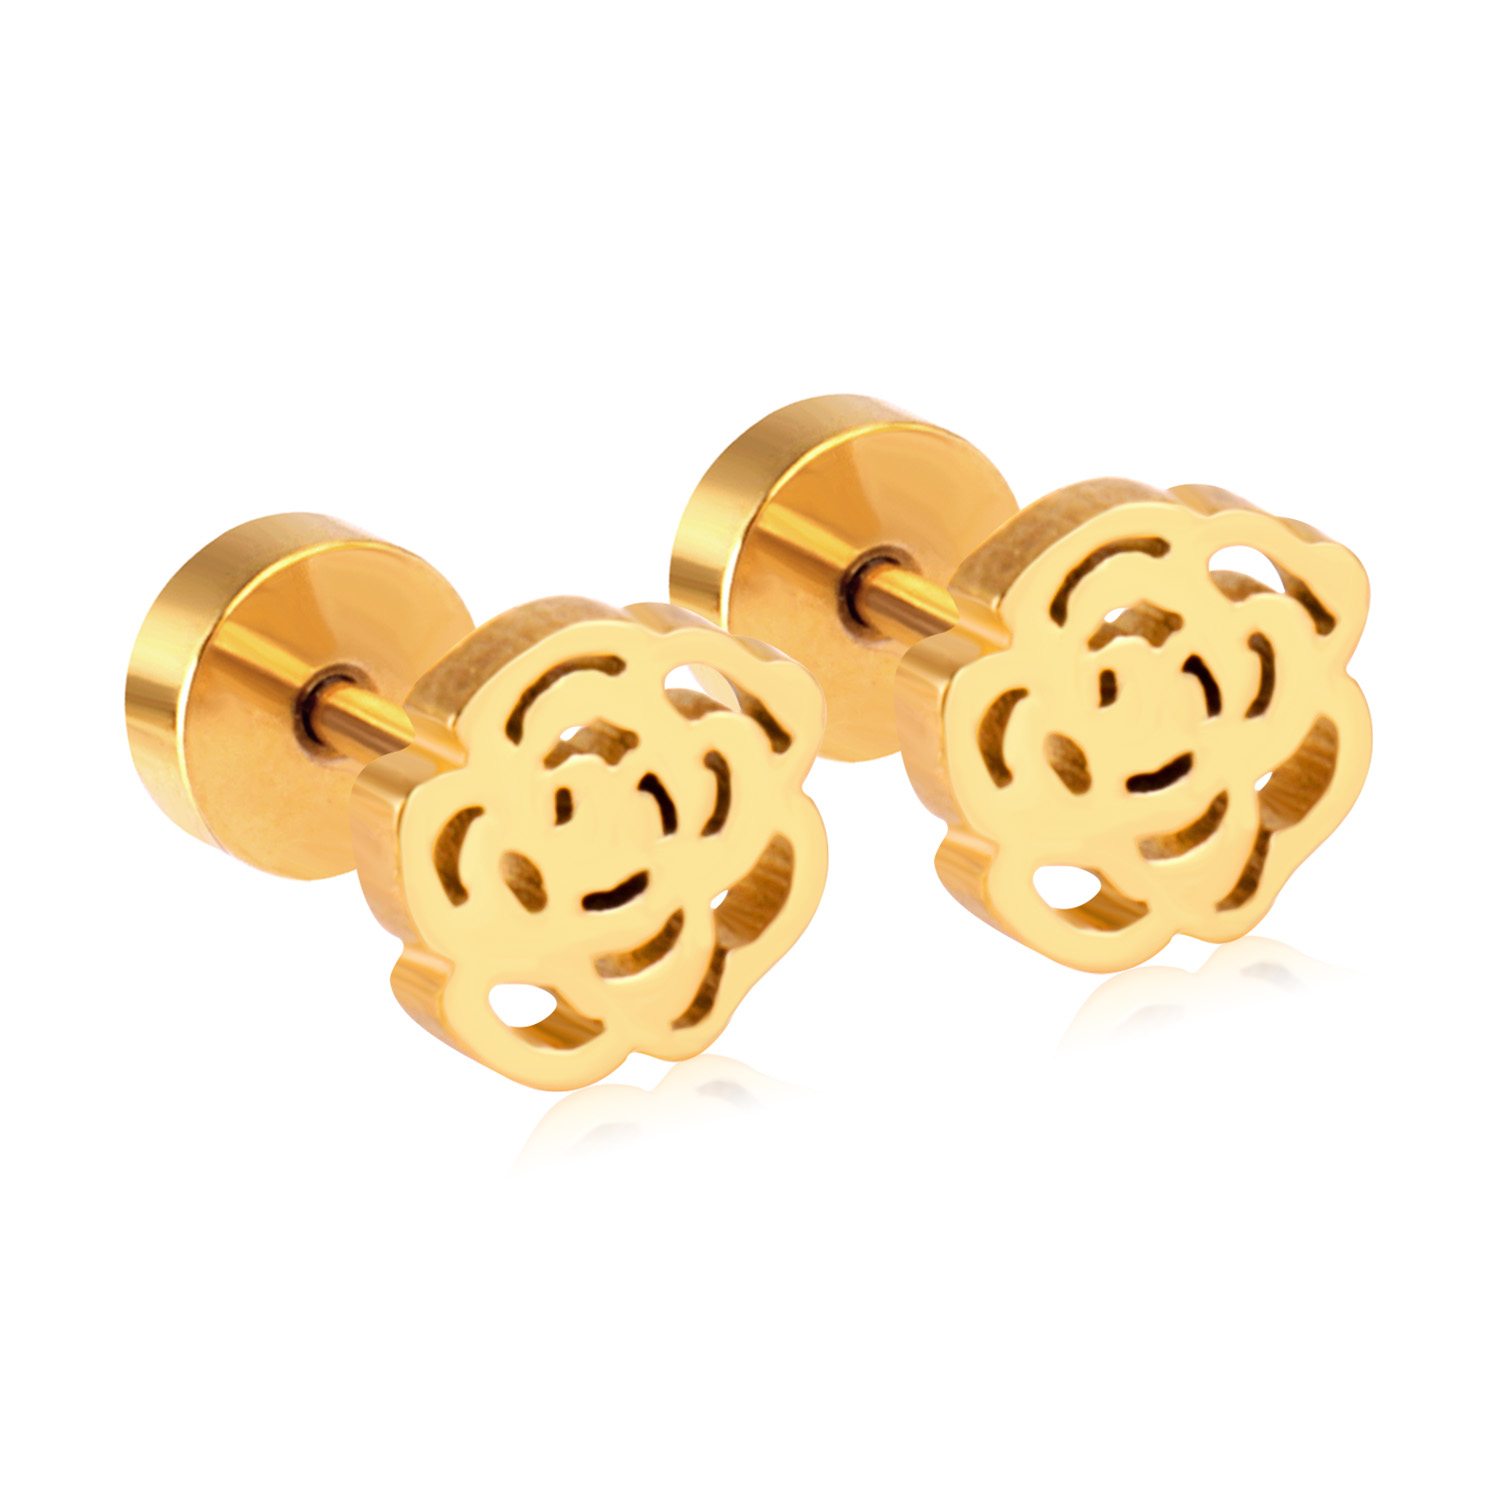 Gold Plated <strong>Earring</strong> <strong>Rose</strong> <strong>Flower</strong> Shaped Screw <strong>Earring</strong> Jewelry Girls <strong>Earring</strong> Guangzhou Supplier